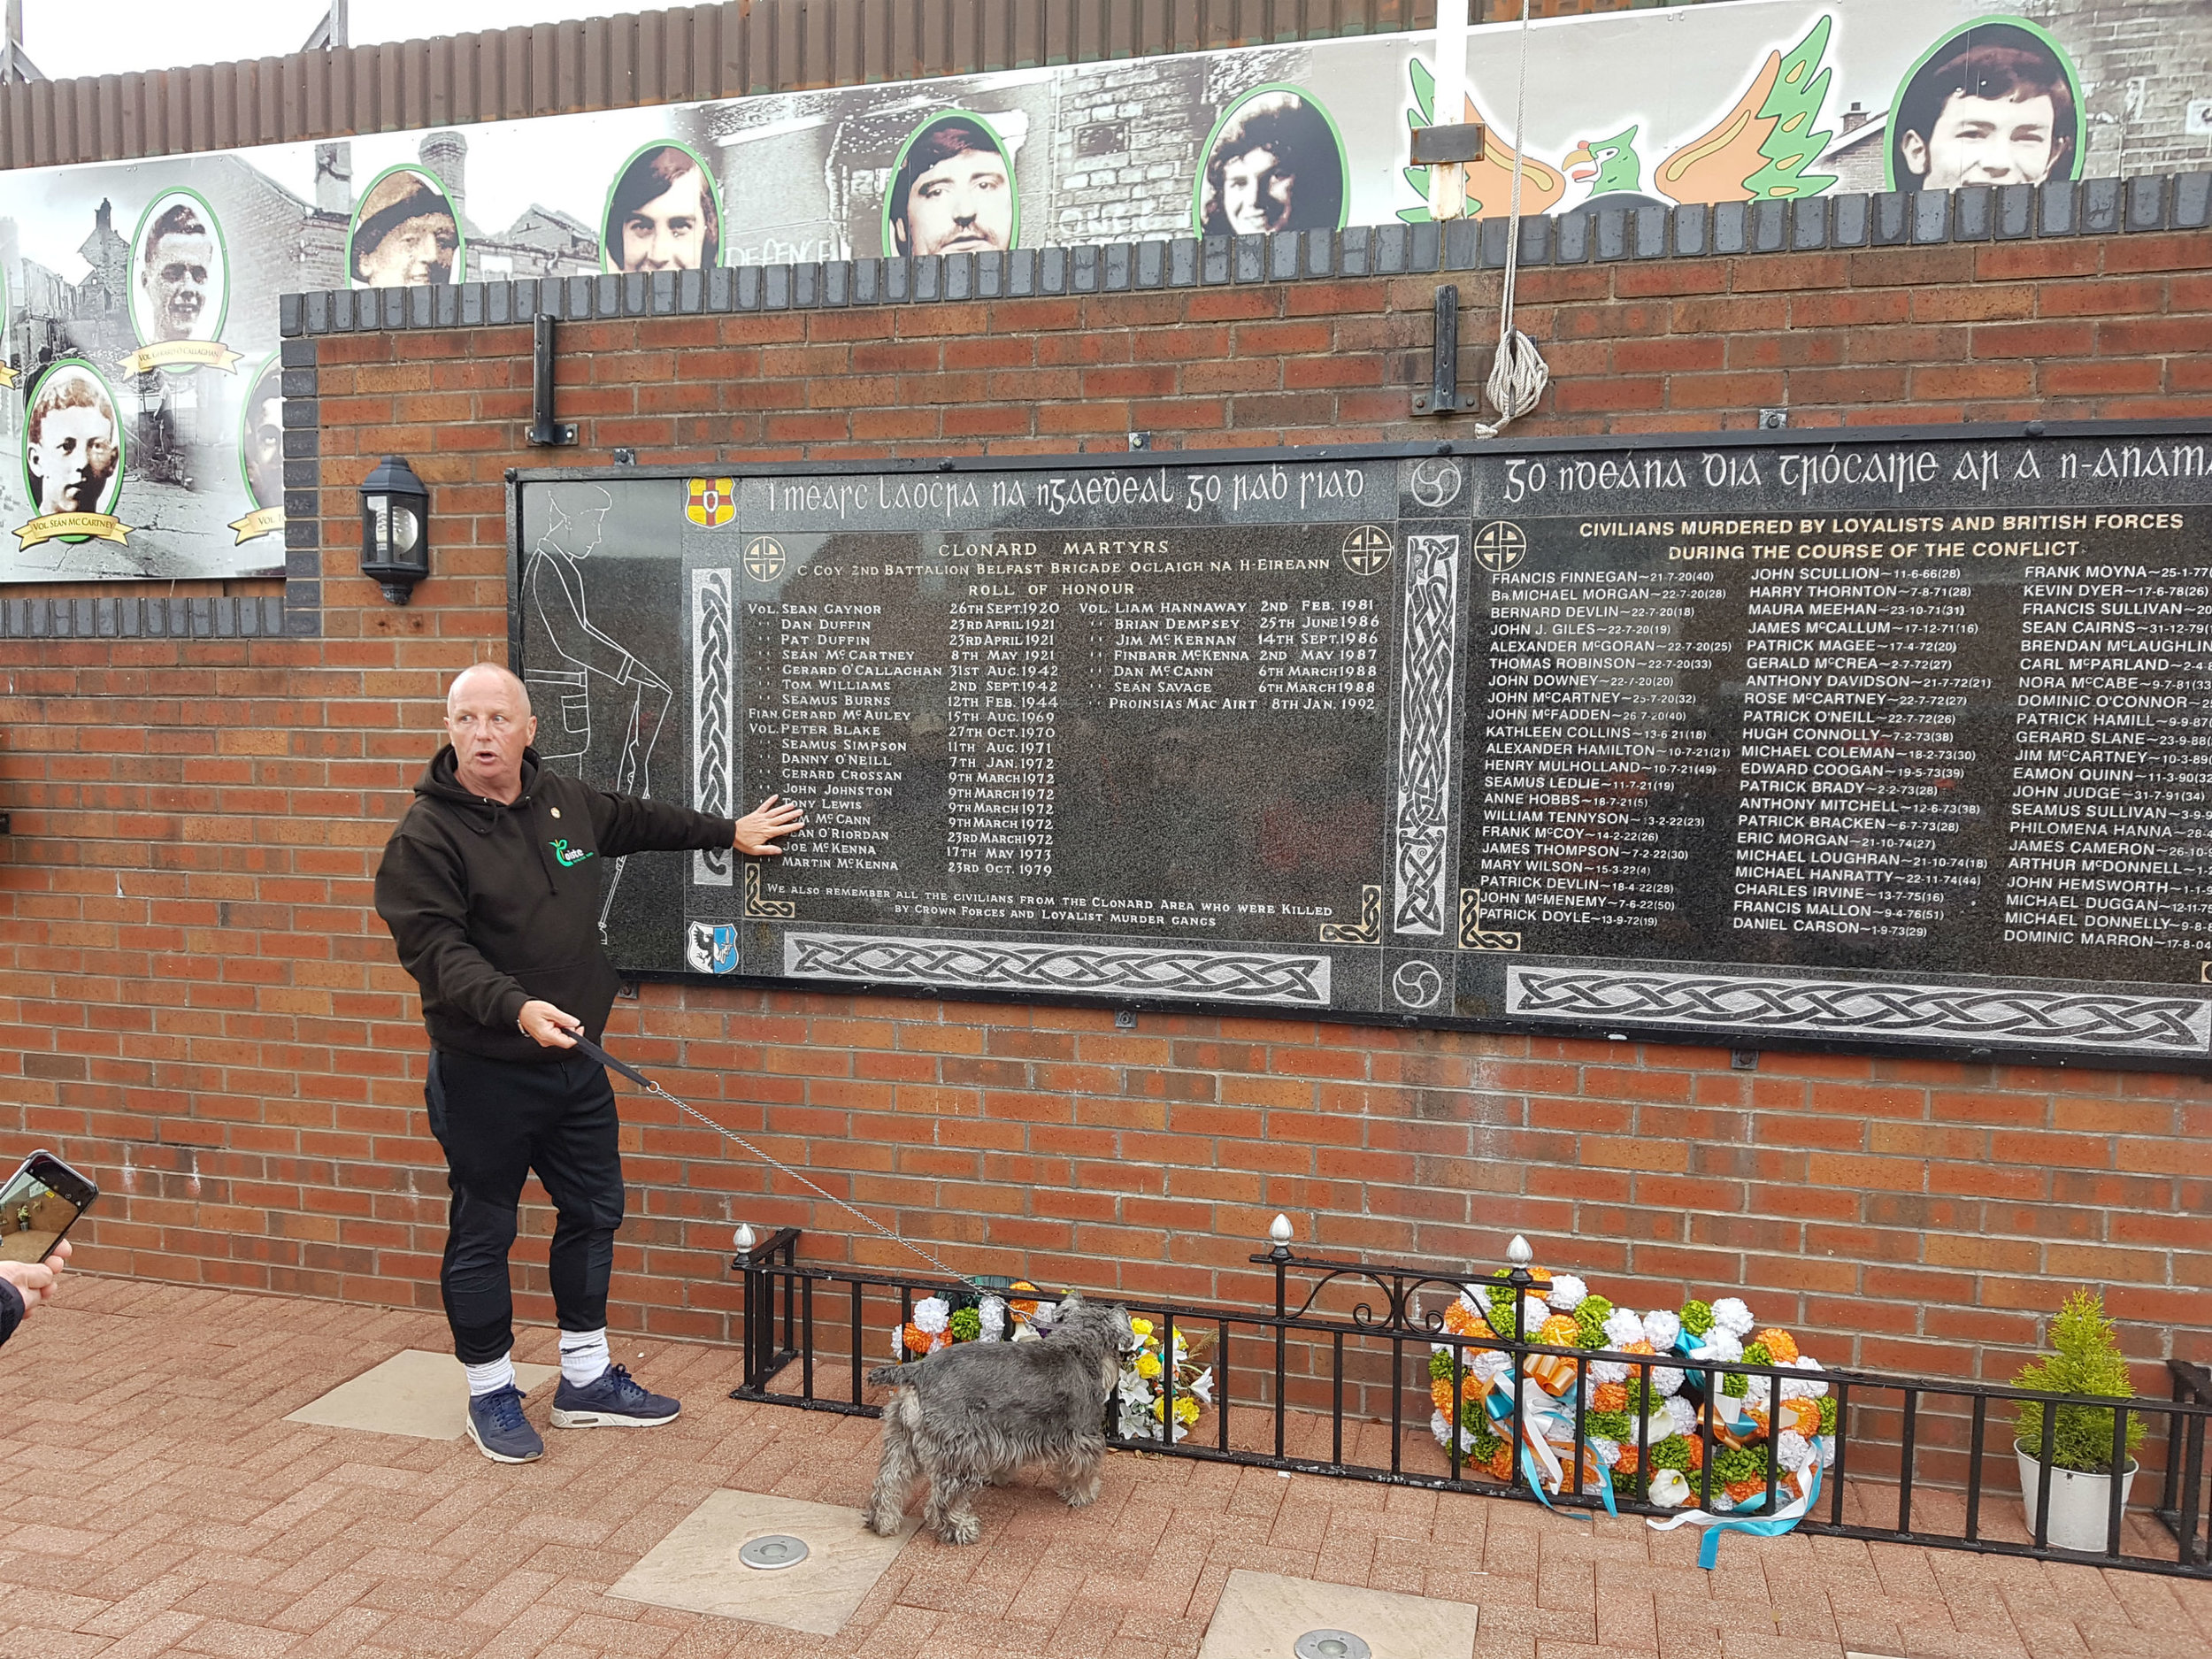 Our guide explaining a memorial for IRA fighters and civilians